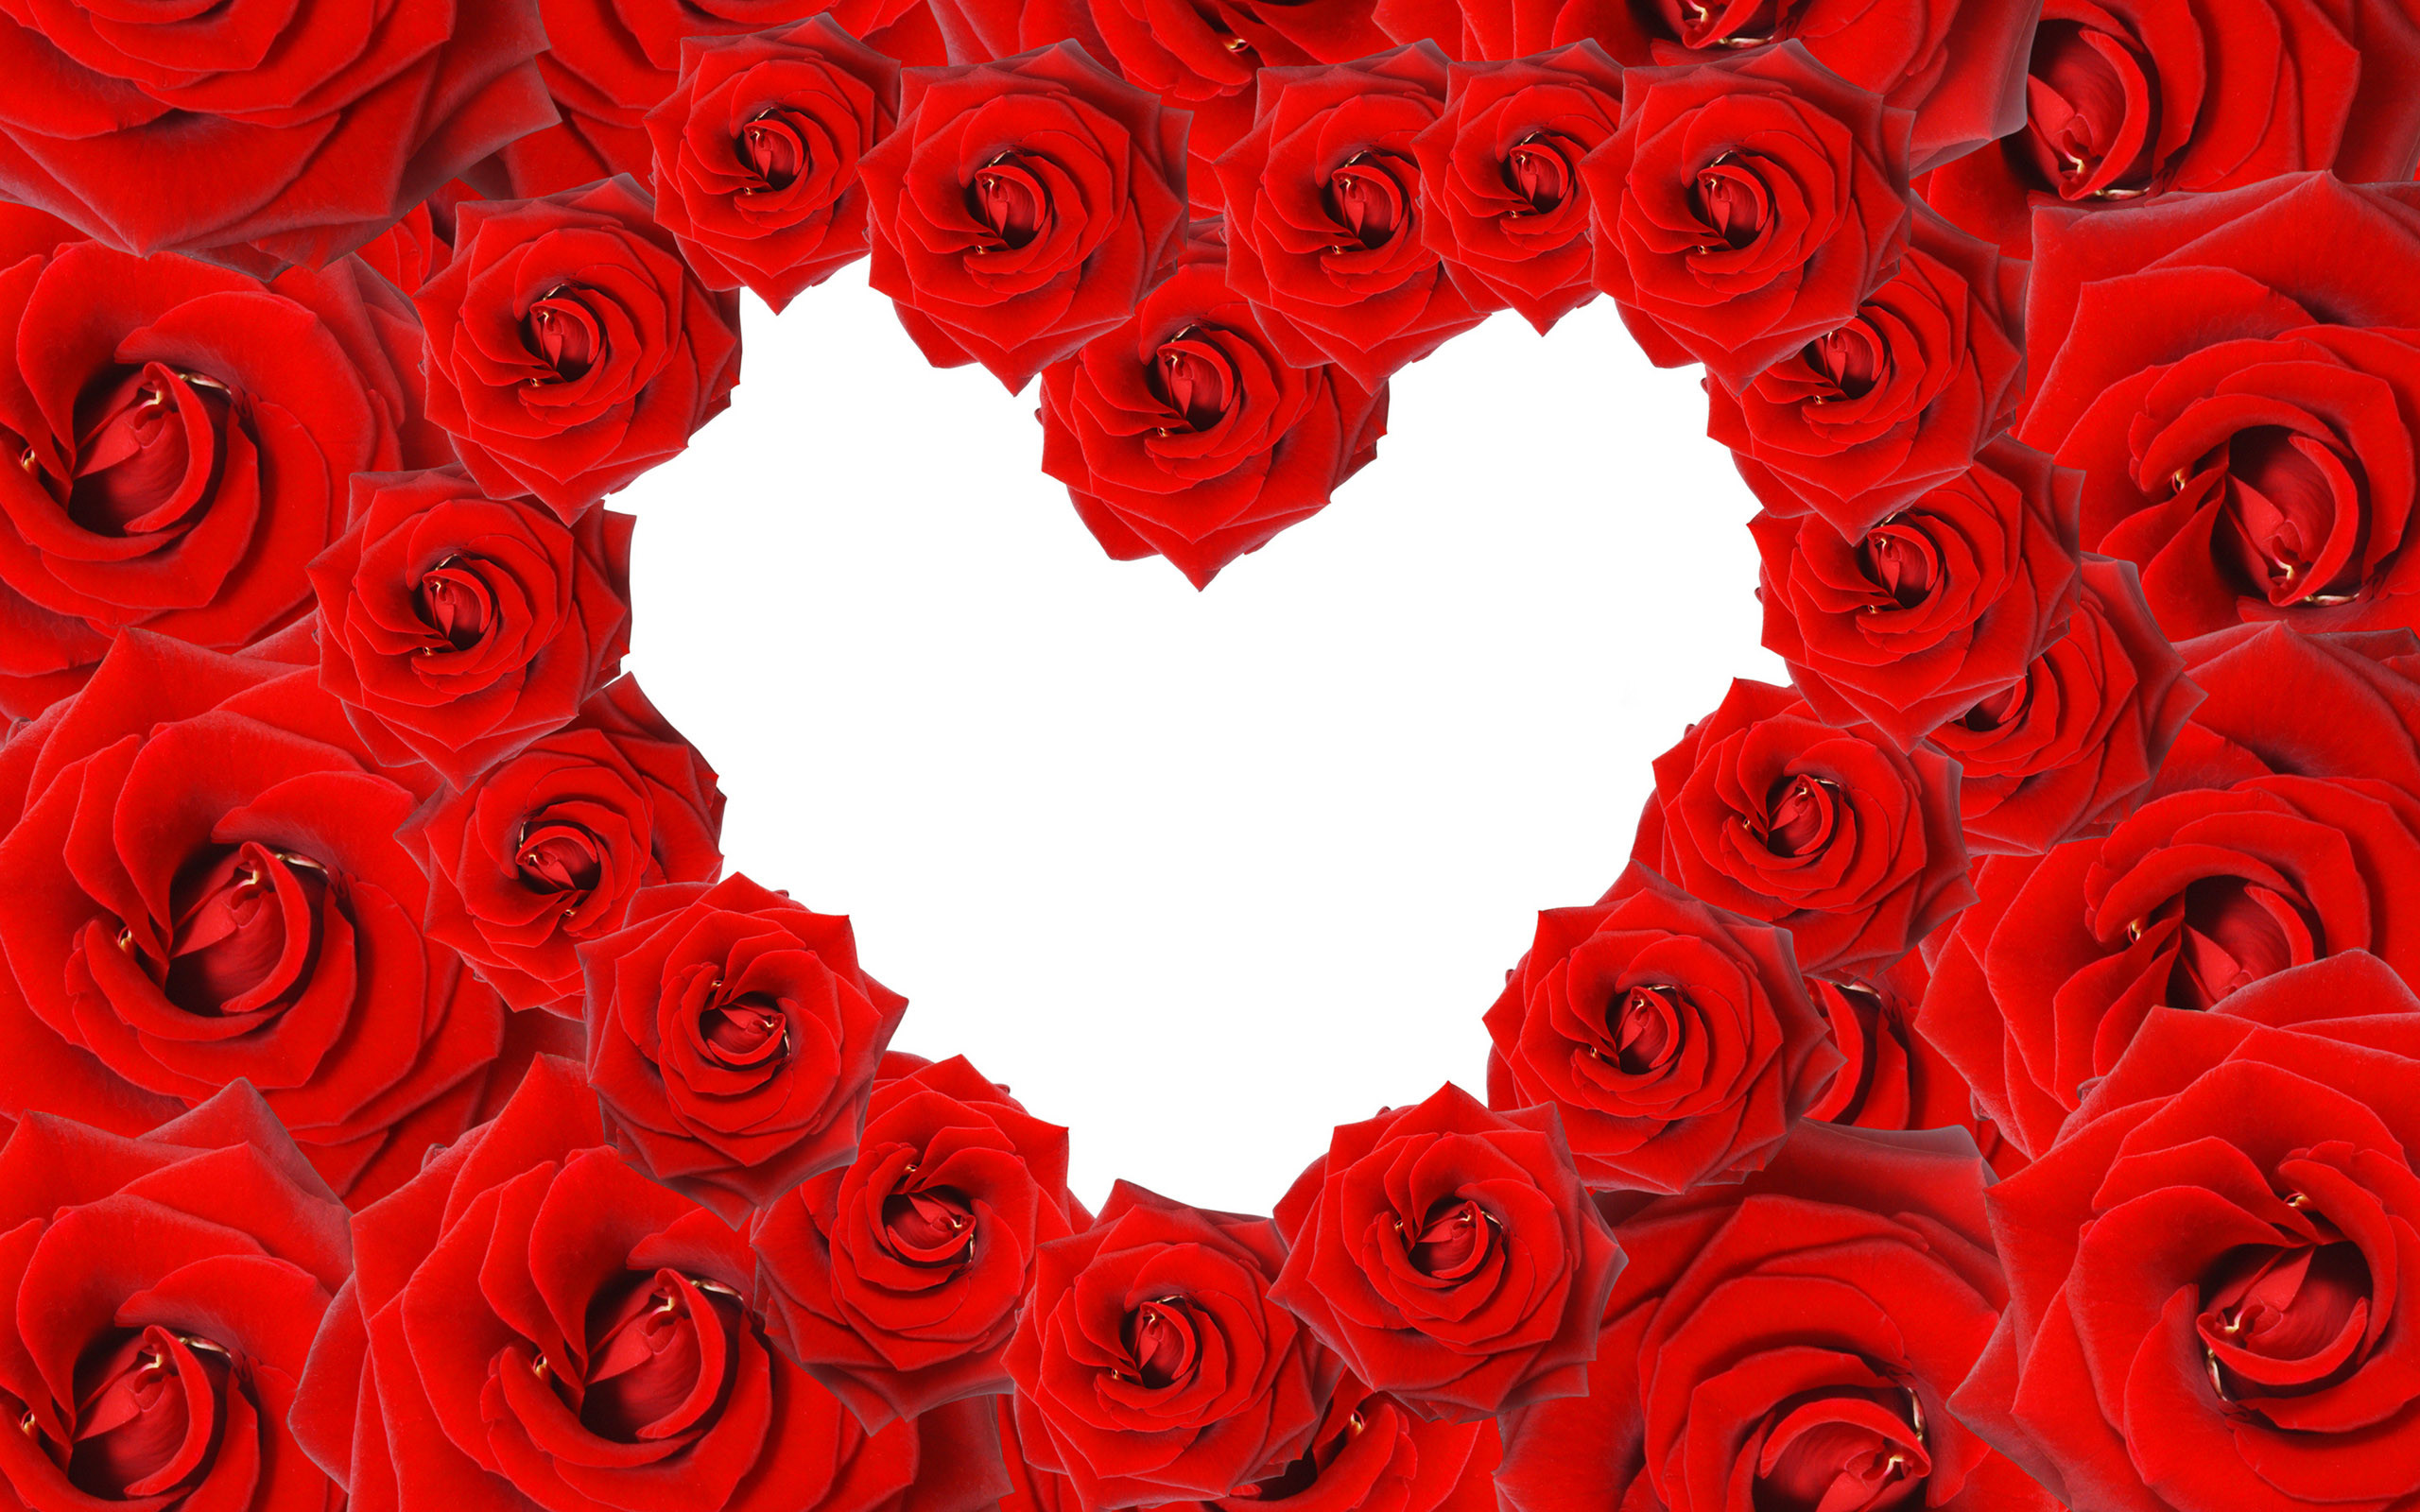 Red Roses & Love Heart